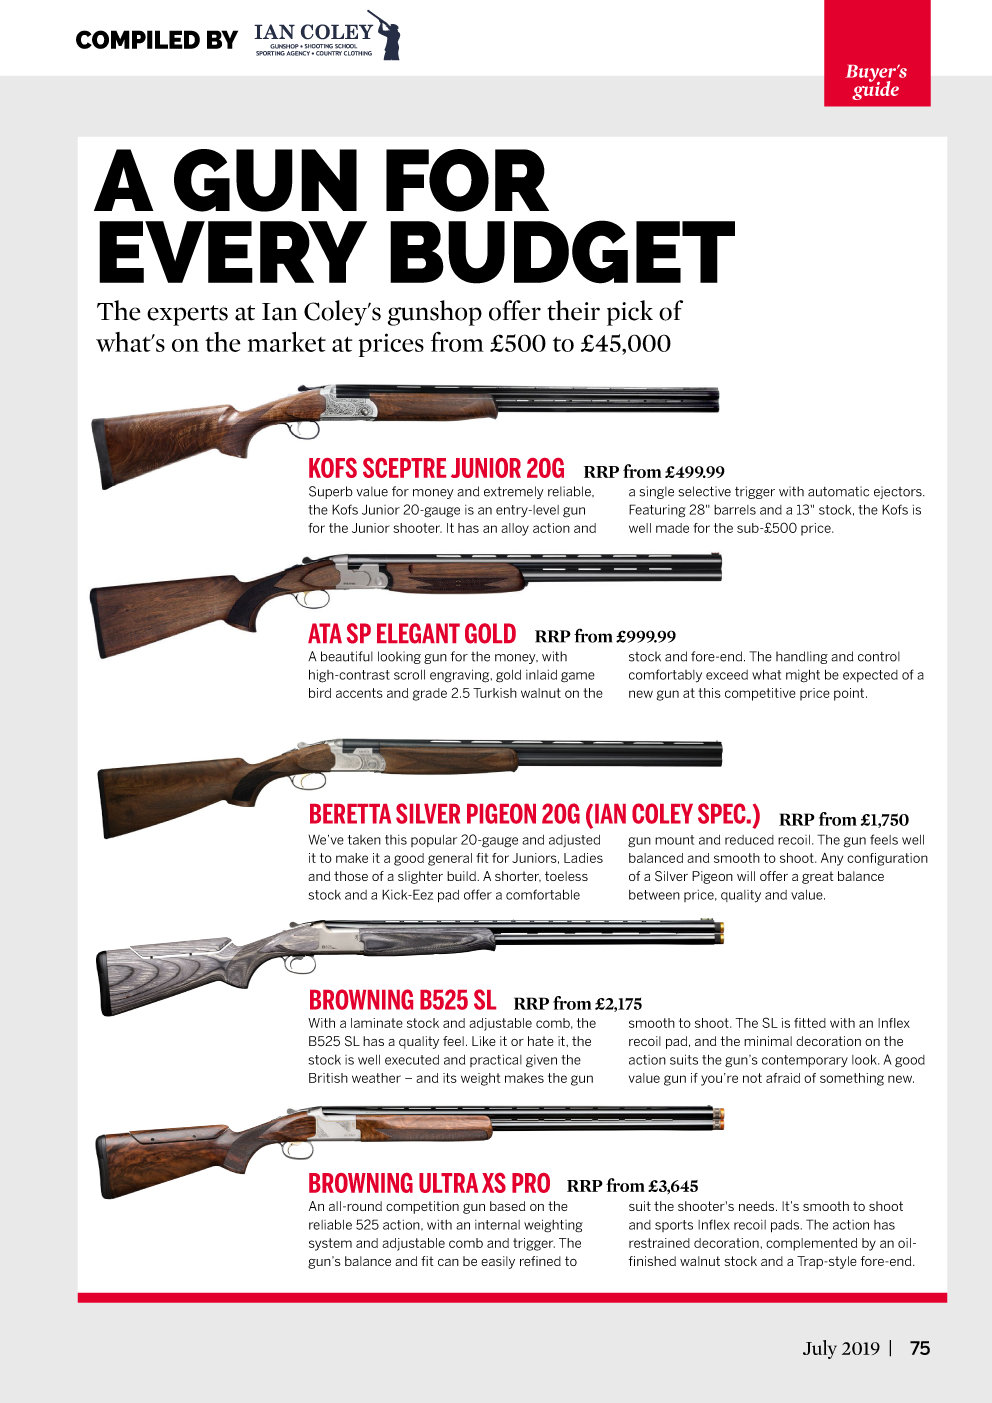 Clay Shooting - Buyer's Guide - A Gun for Every Budget - July 2019